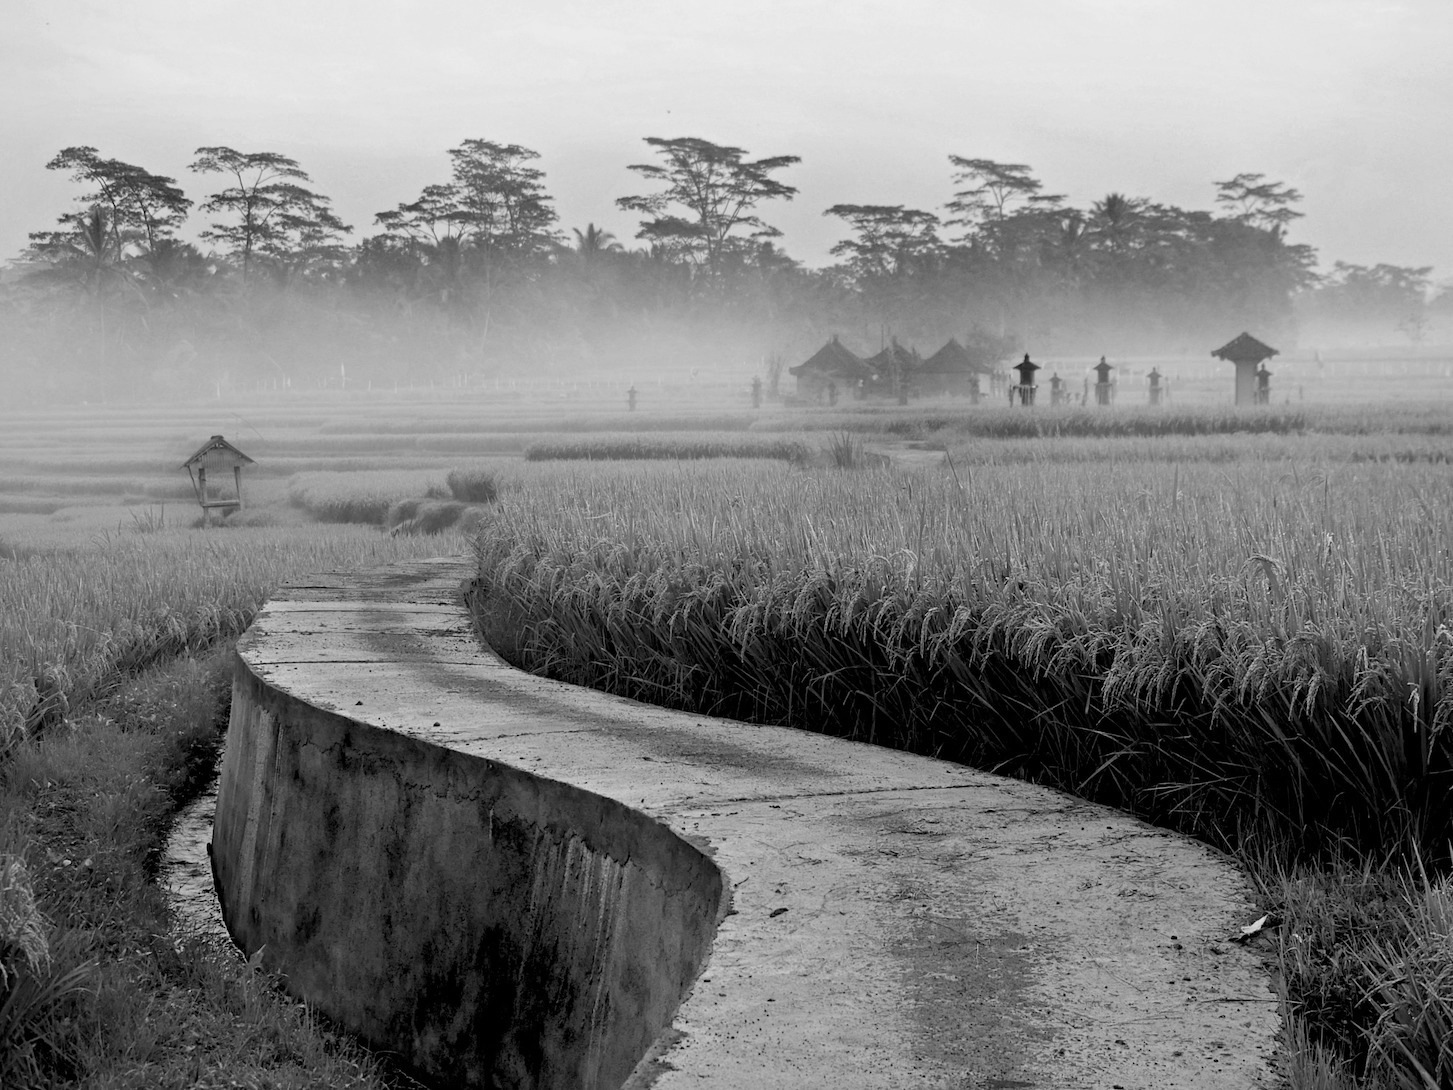 The track Into the Ricefeilds... by kevinmfairley